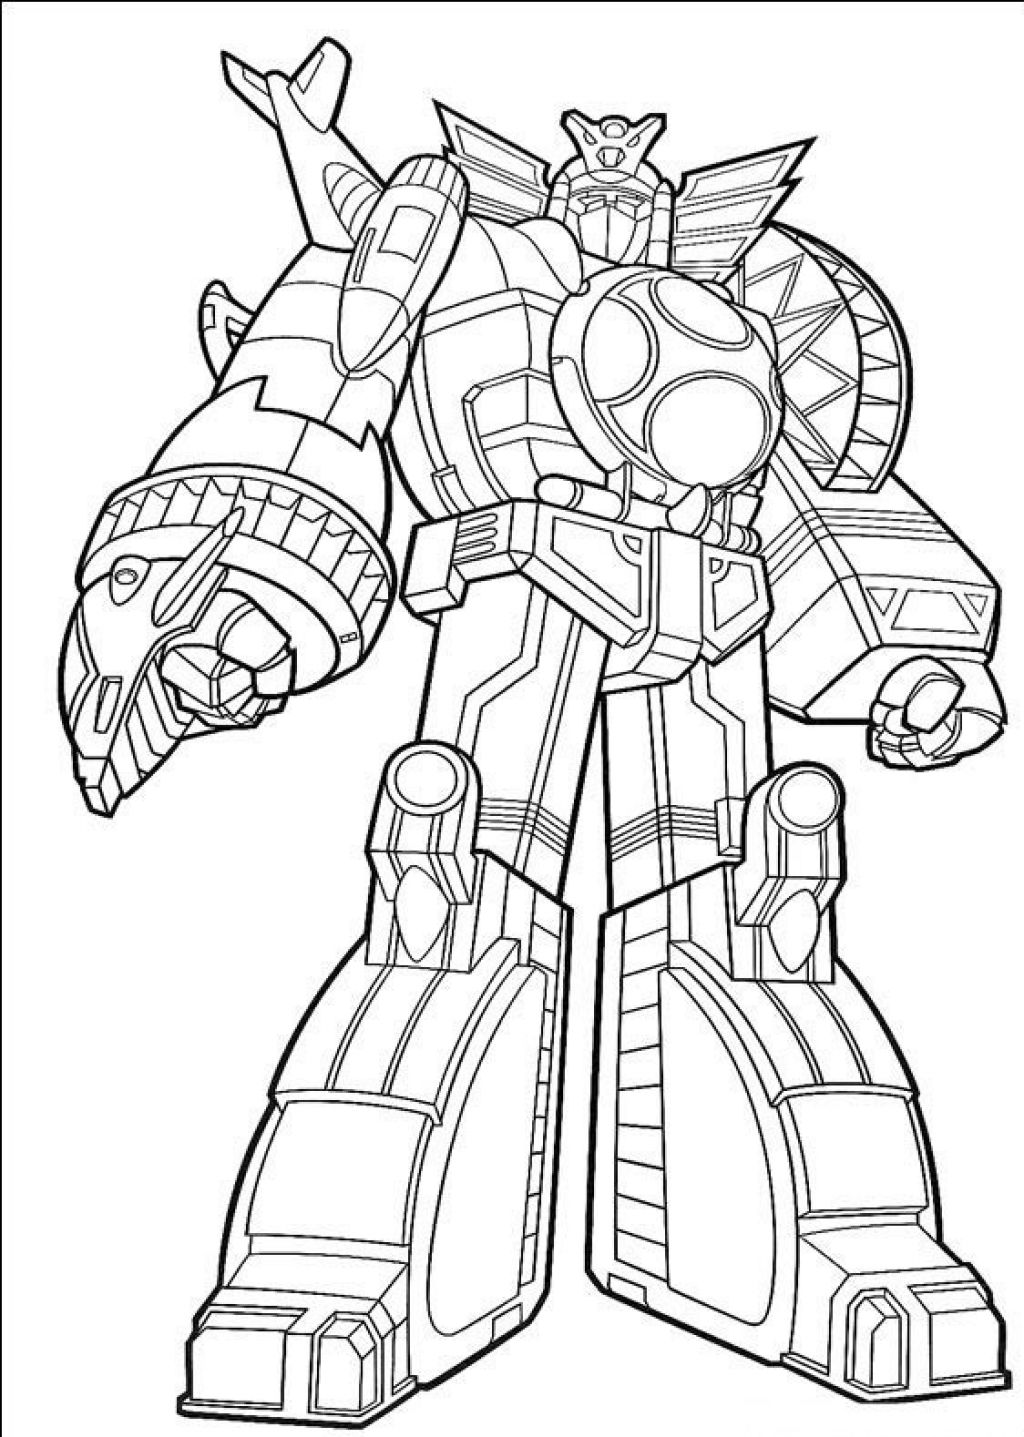 Power Rangers Dino Coloring Pages At Getdrawings